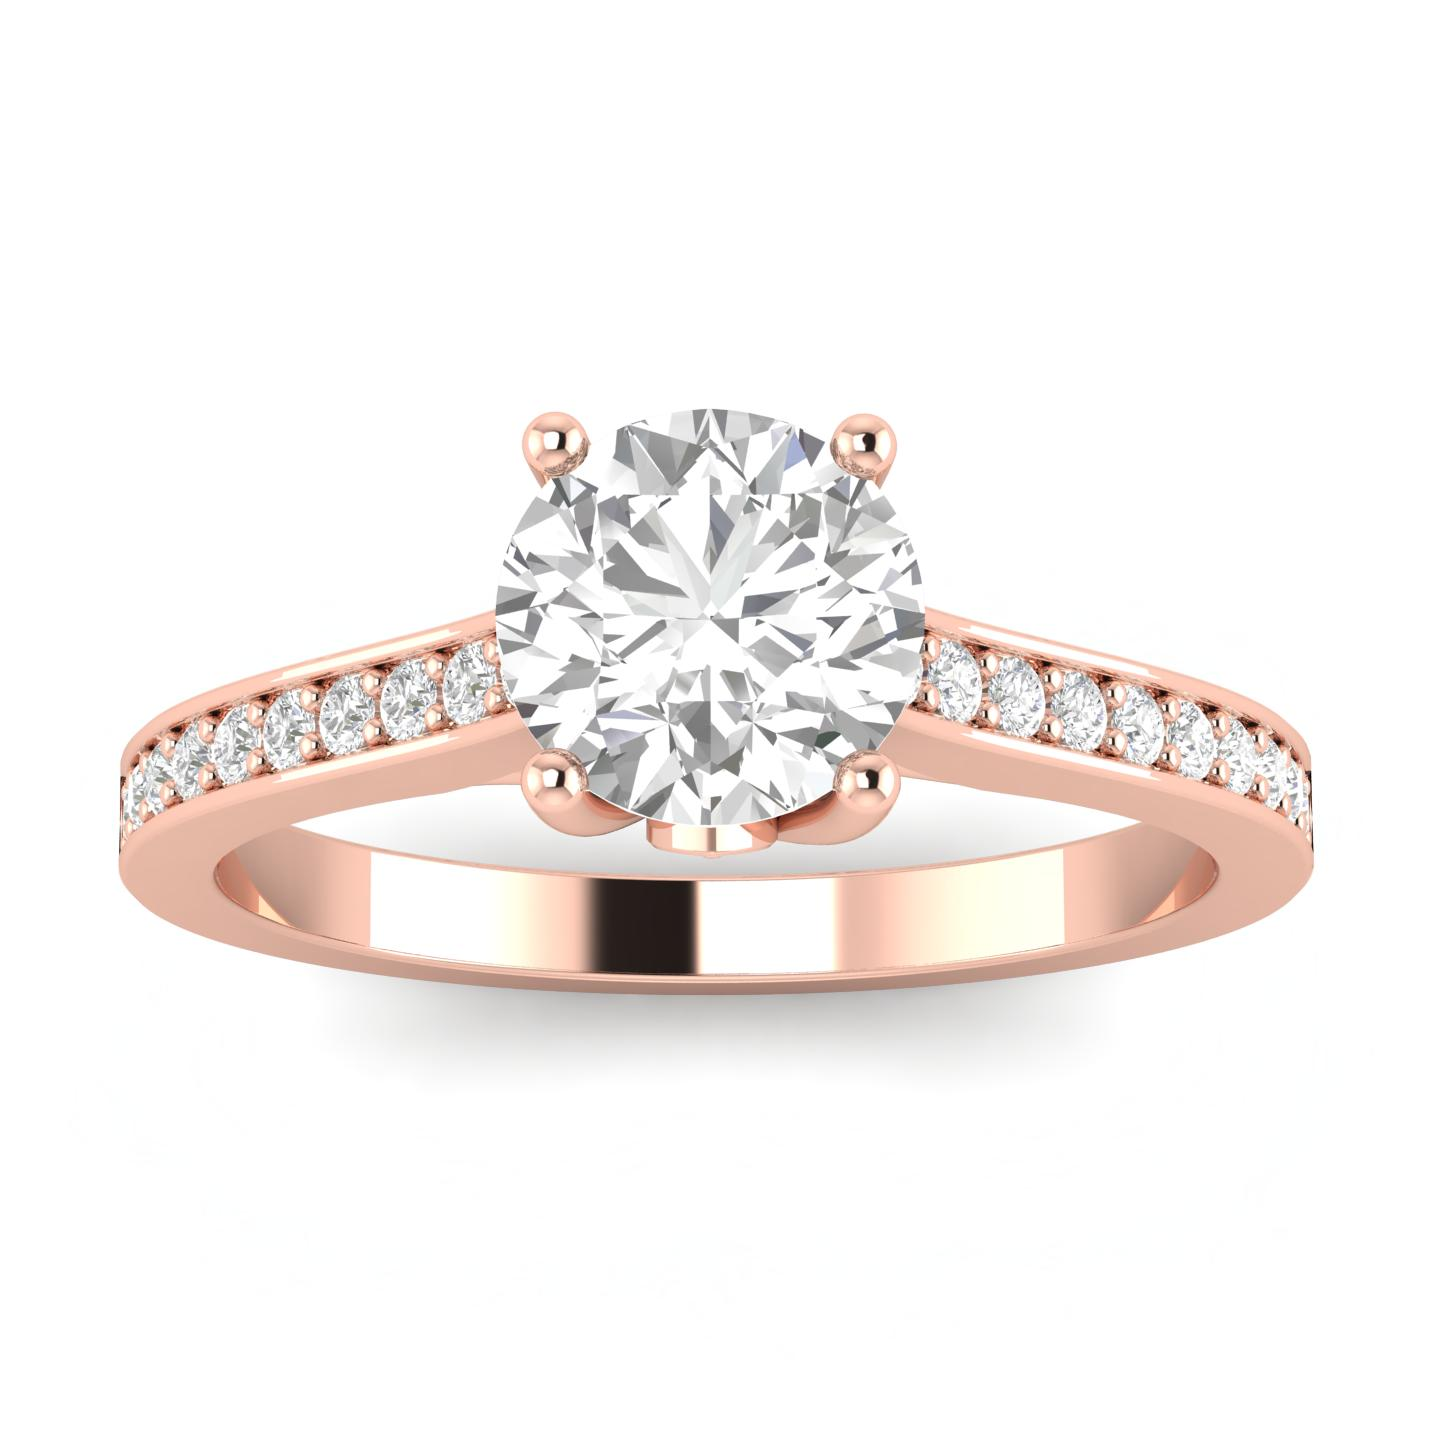 3 4ctw Diamond Engagement Ring in 10k Rose Gold by Sk Jewel,Inc